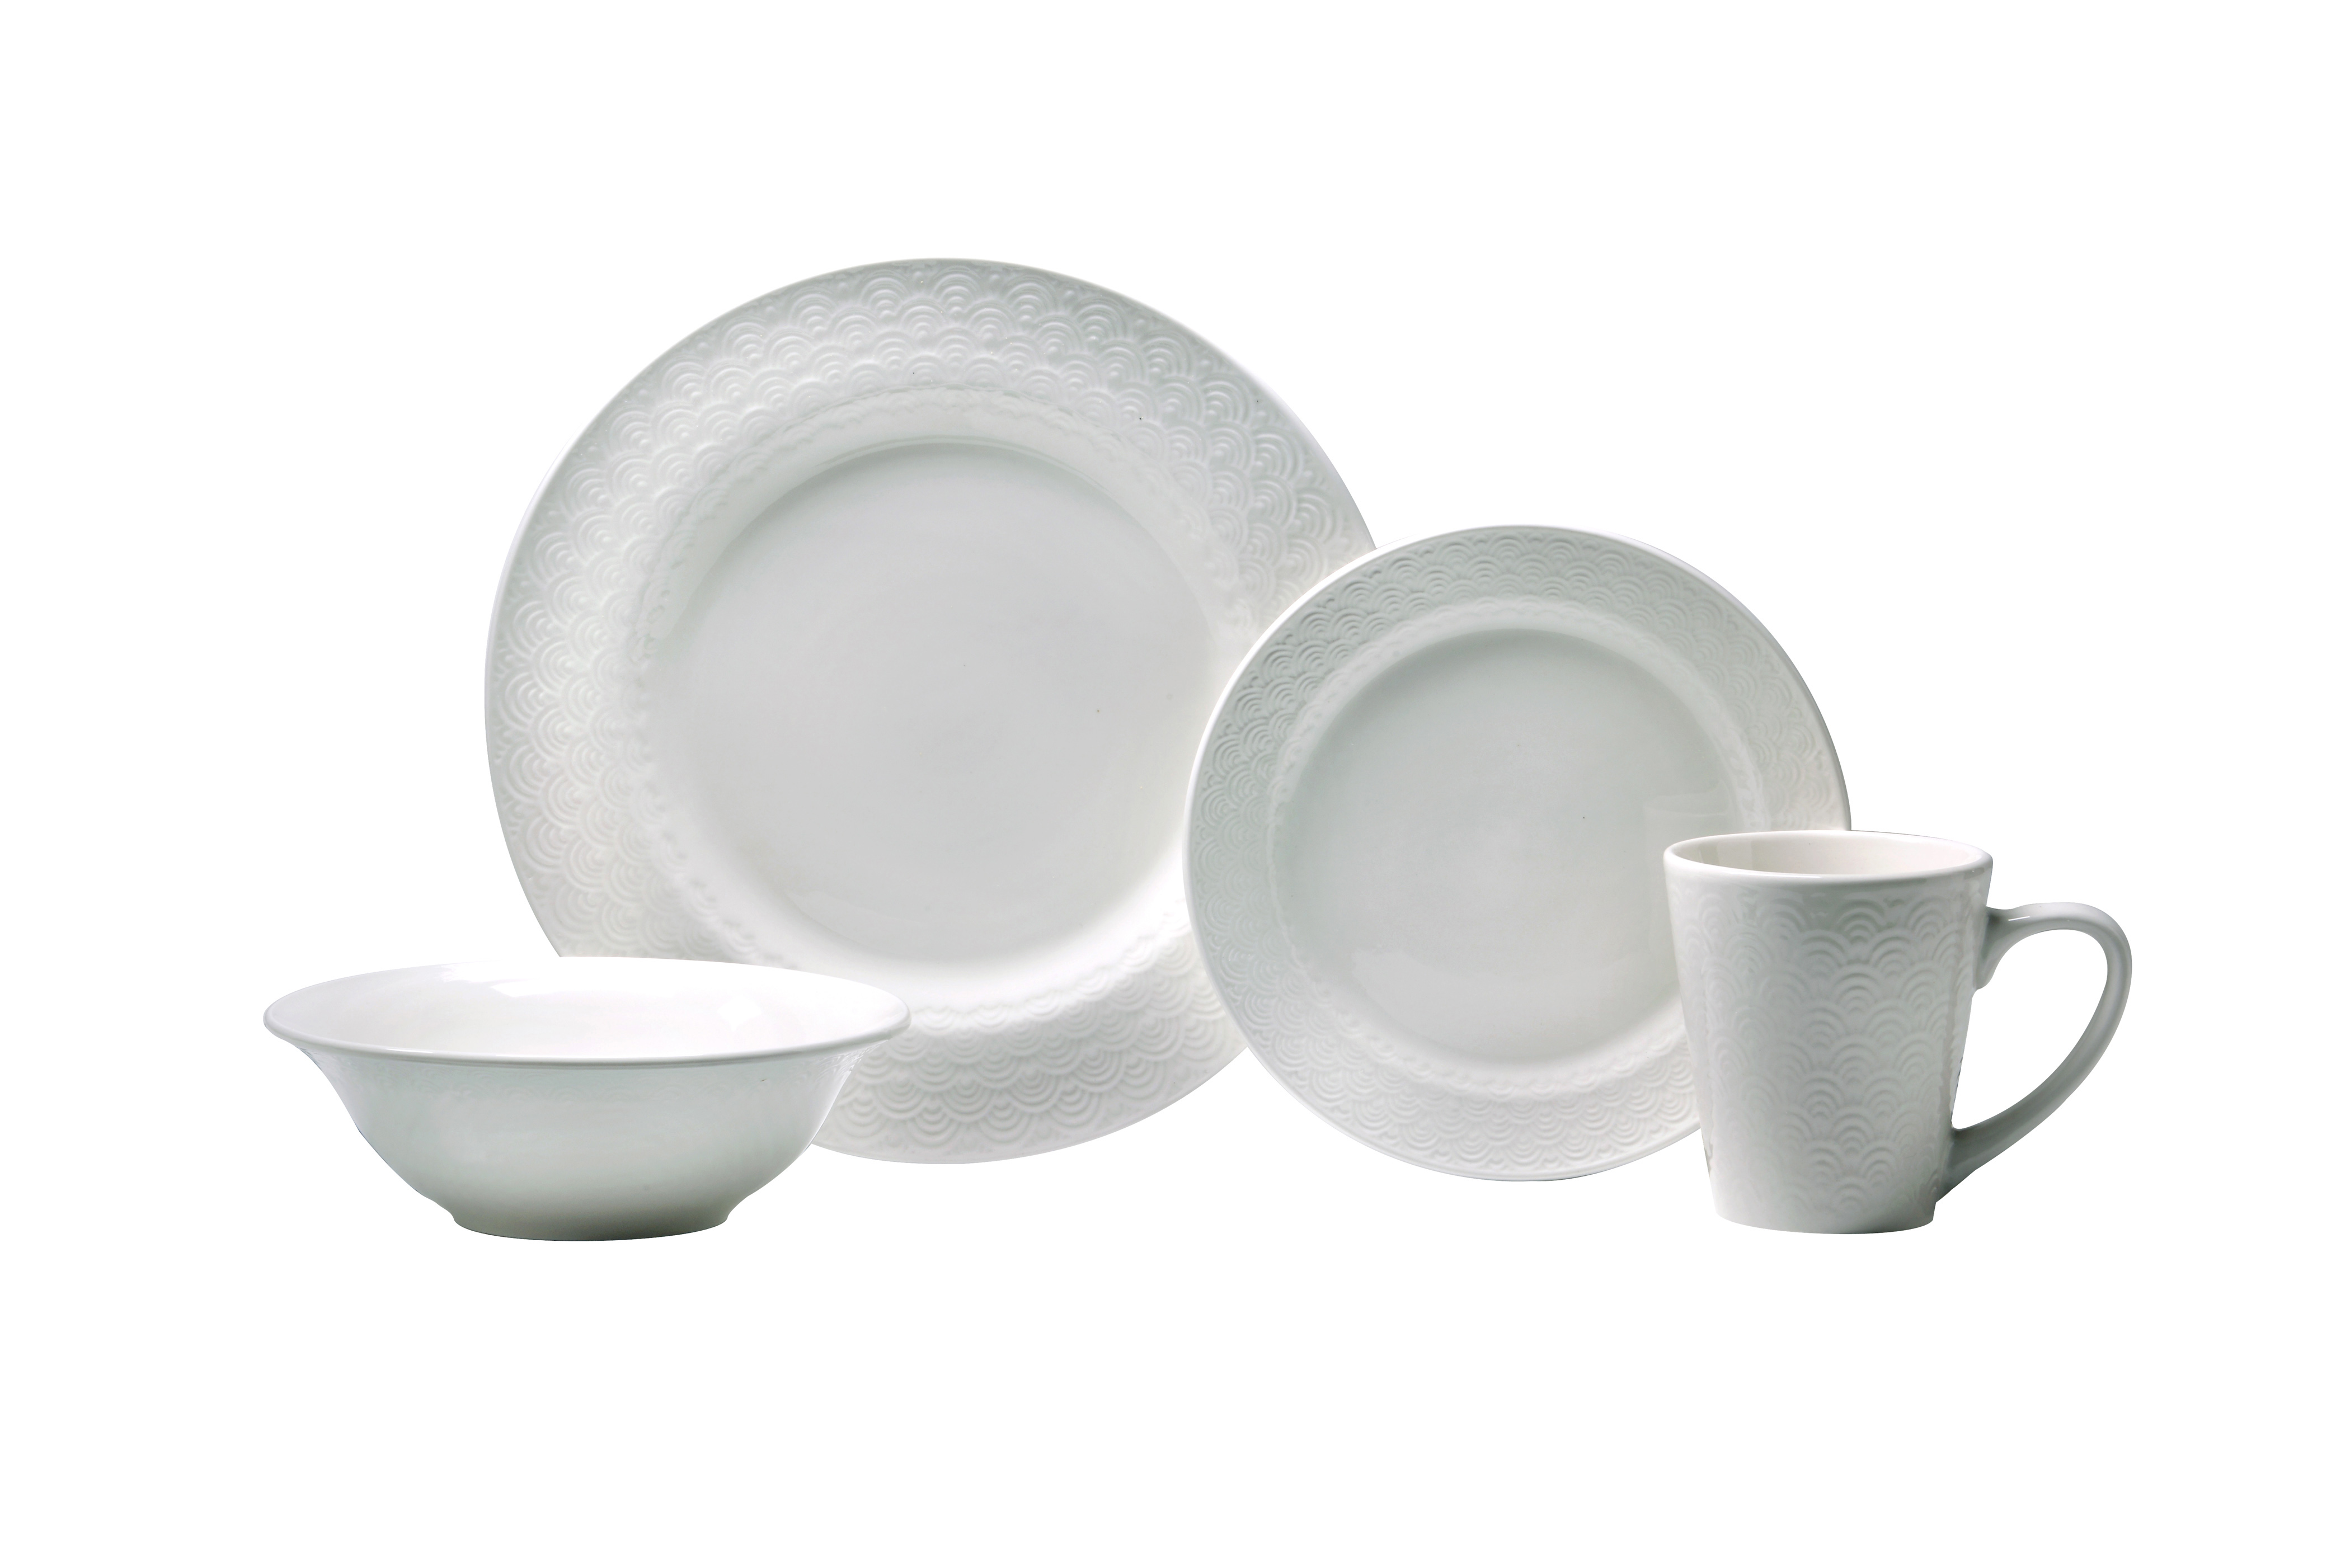 New Kato pattern  sc 1 st  Kitchenware News & Oneida Dinnerware Caught In All-White after Labor Day | Kitchenware ...